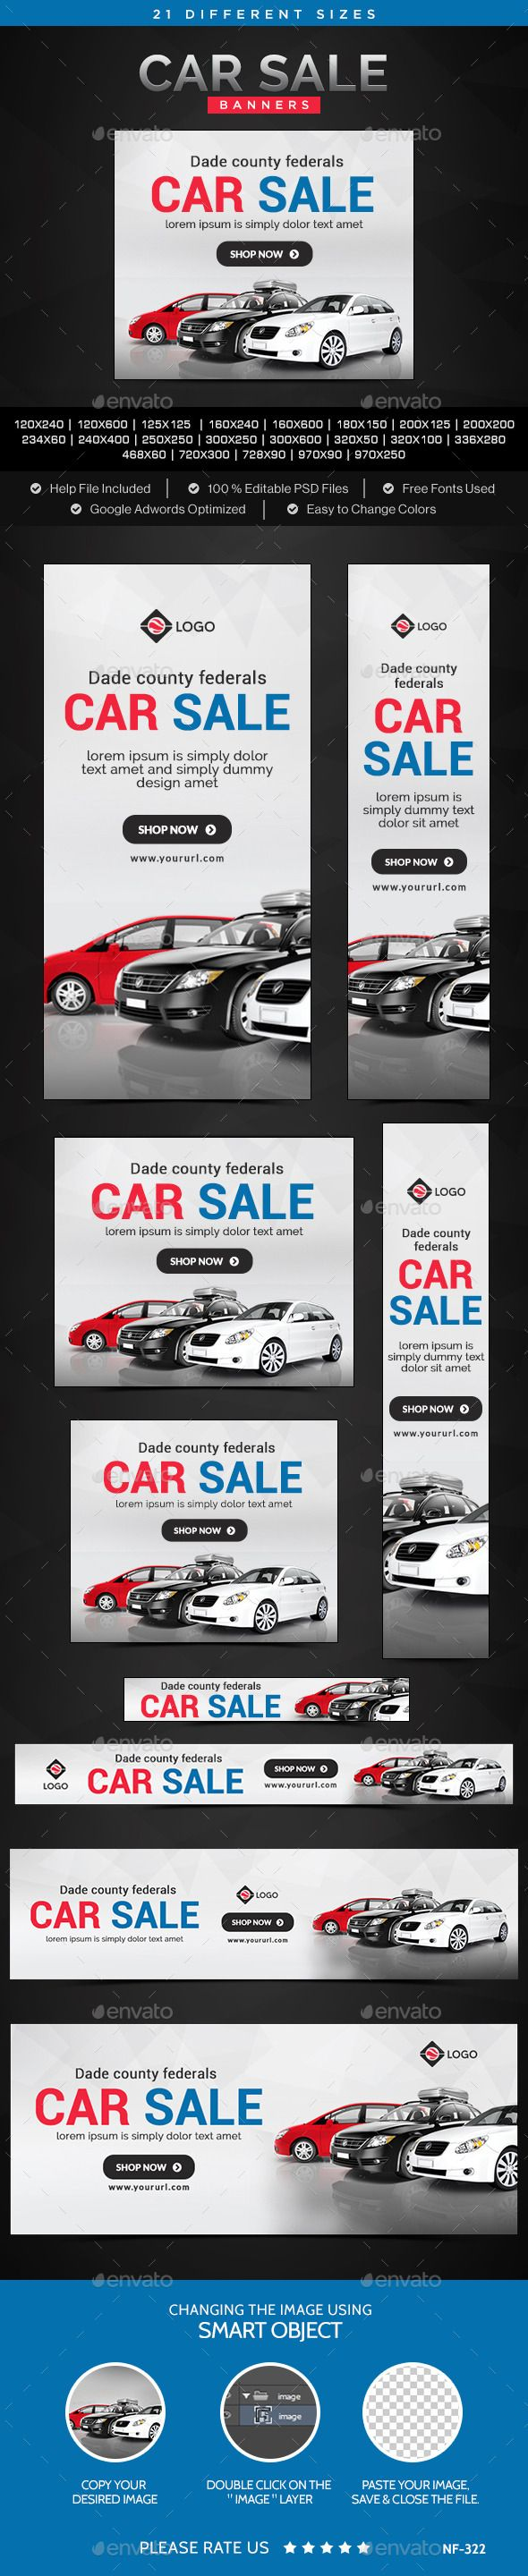 Car Sale Banners Template 85 best car